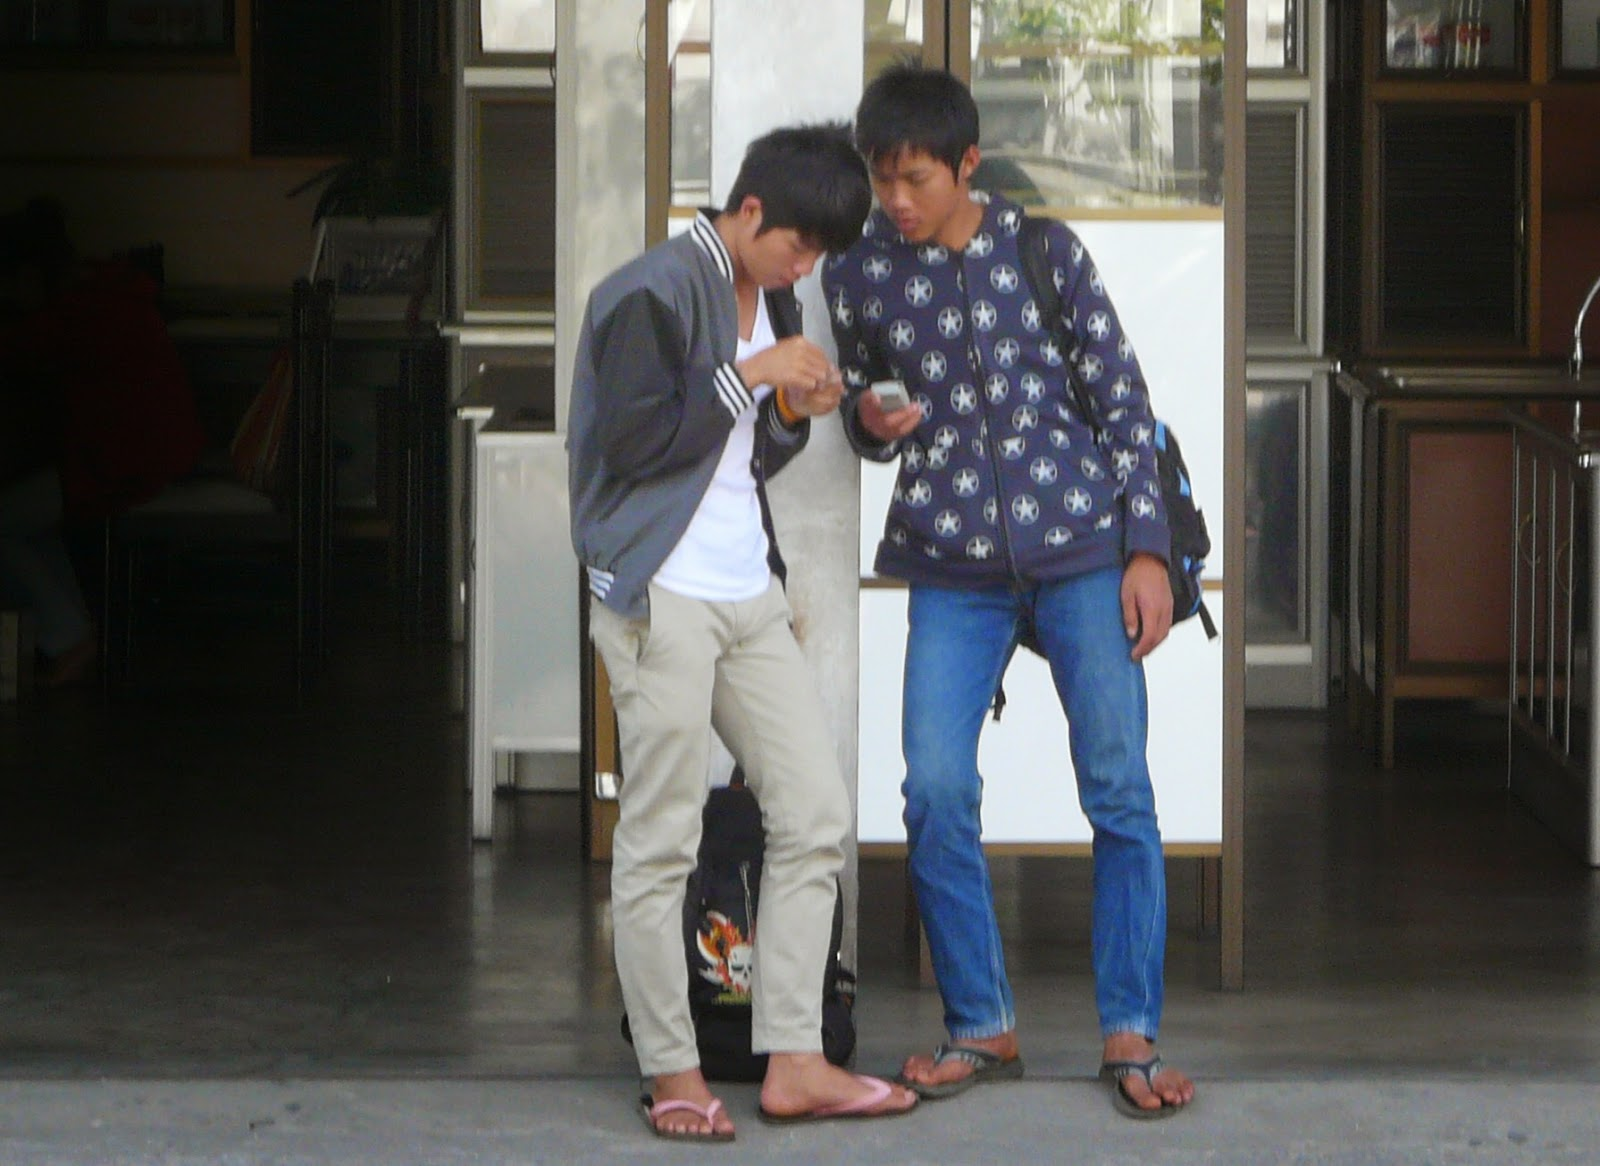 Boys near Chang Phuak Bus Station